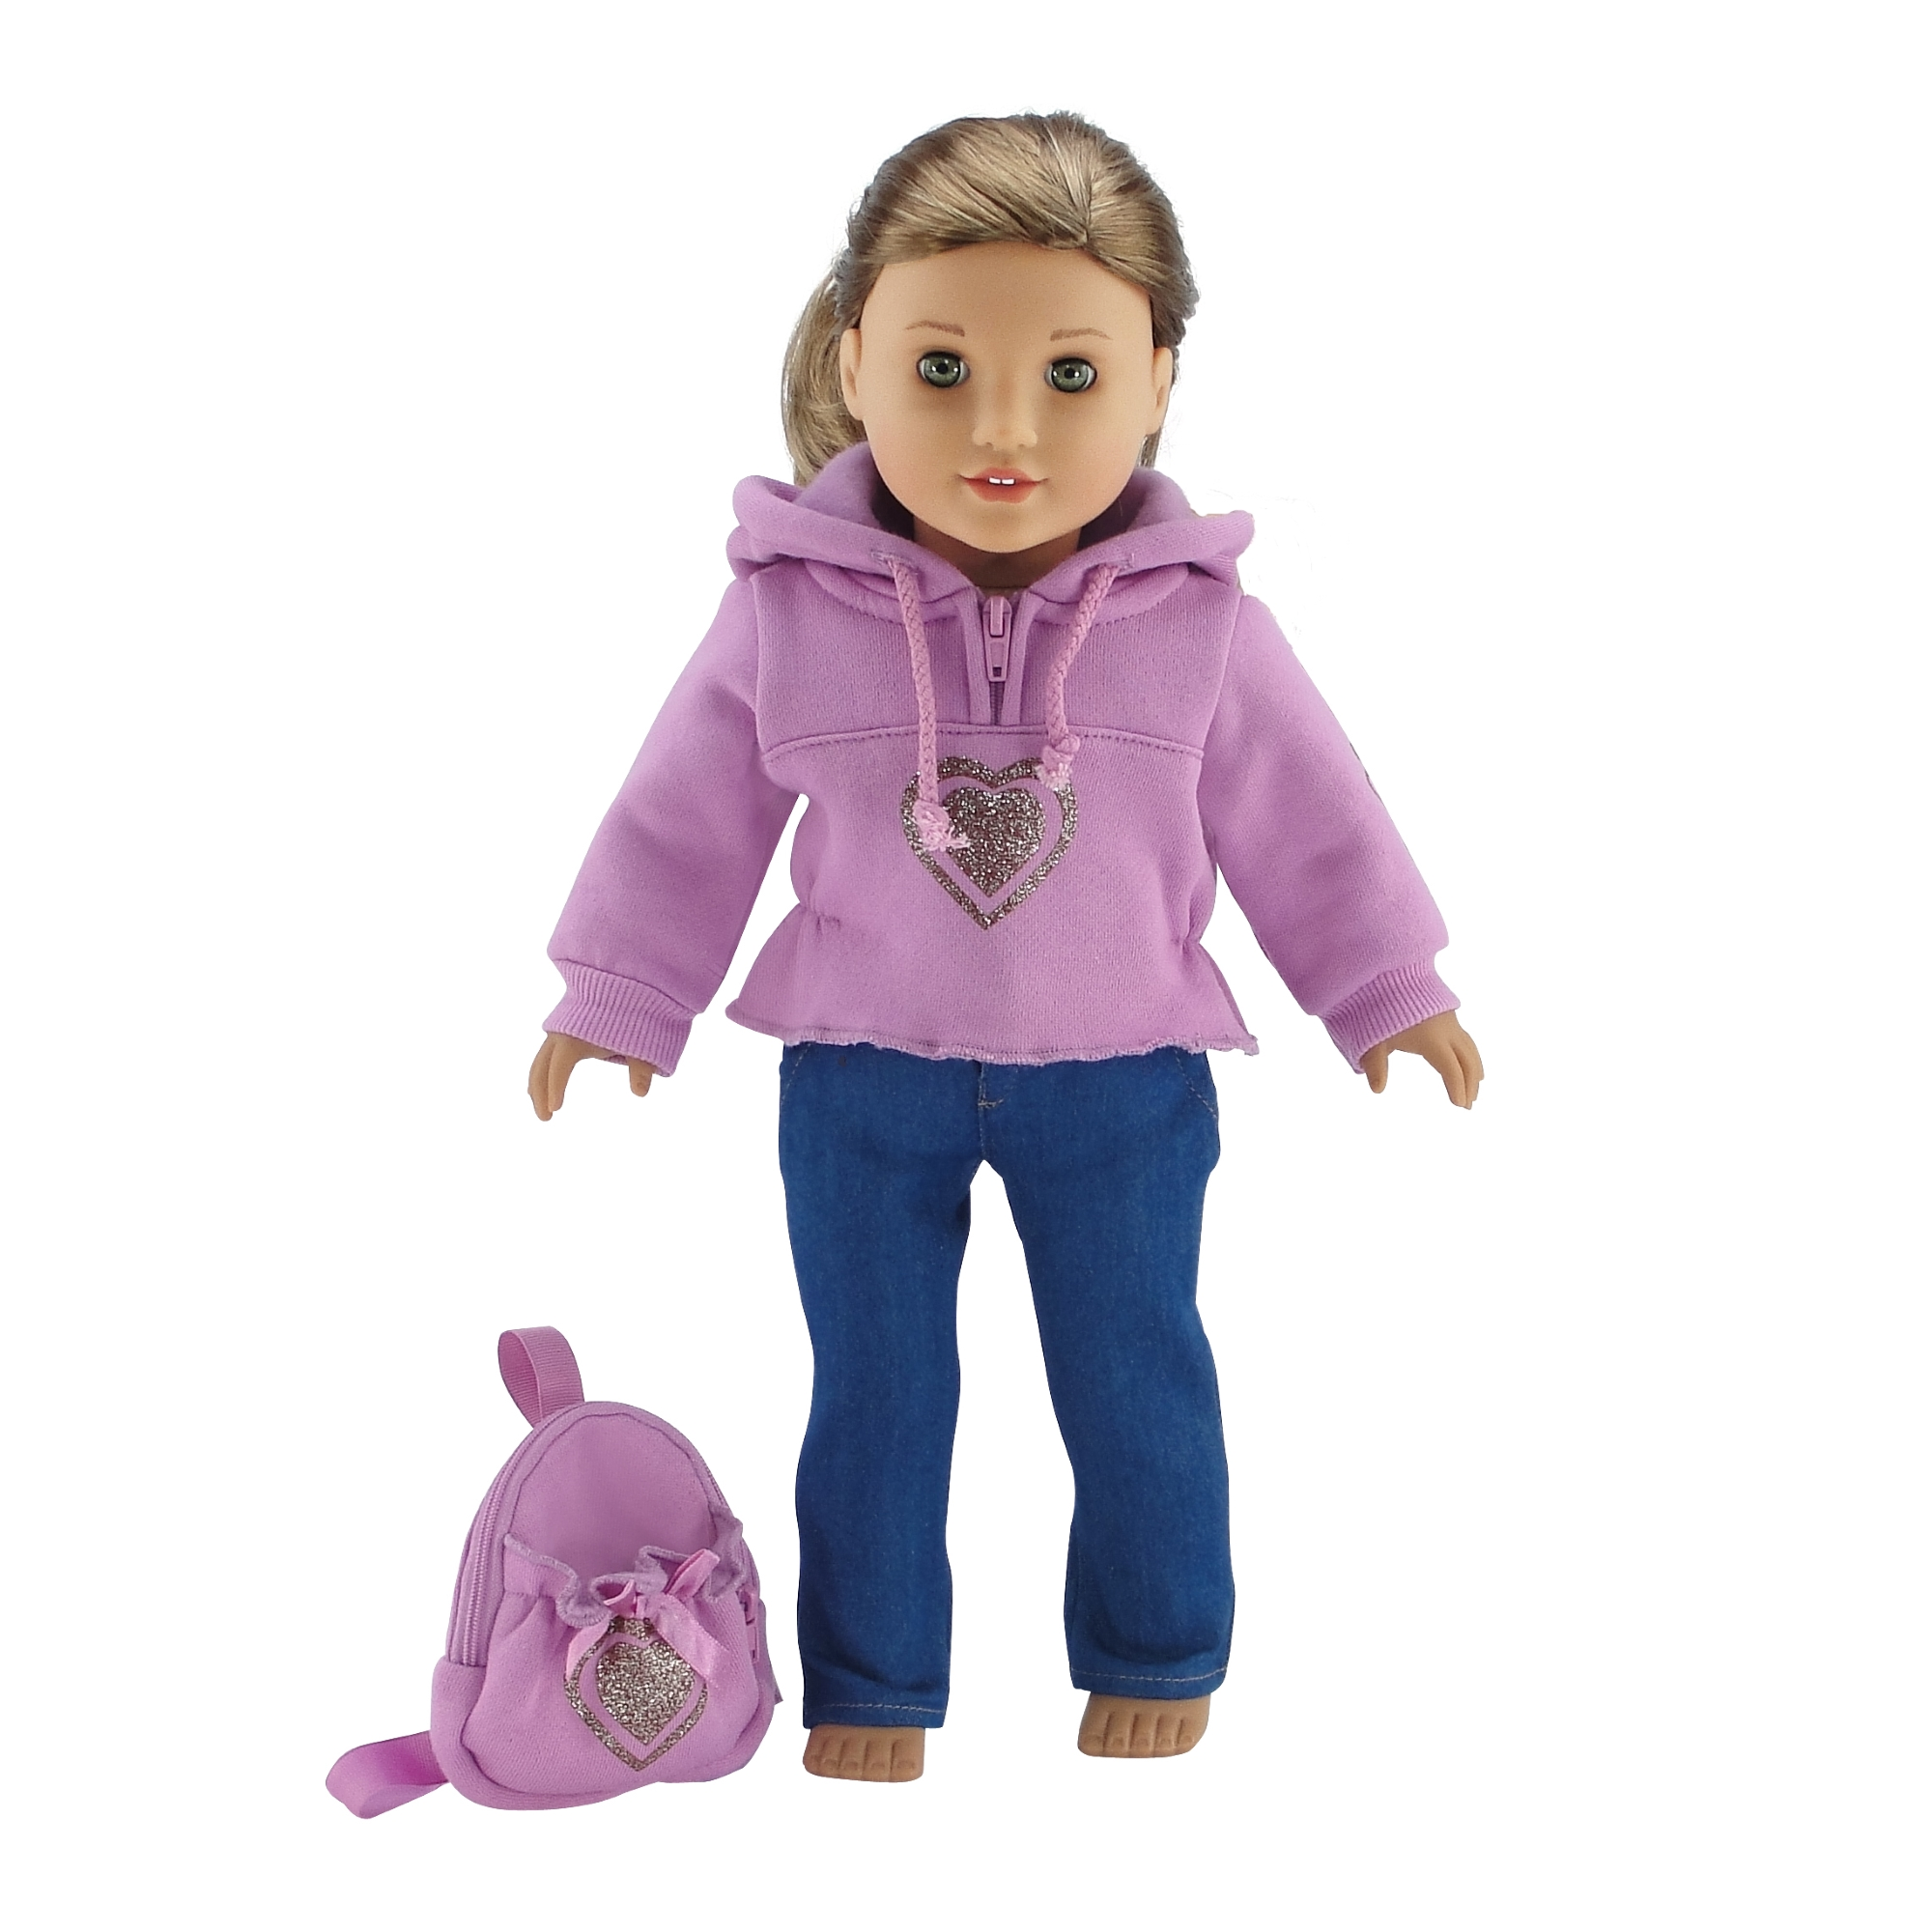 "18 Inch Doll Clothes Heart Hoodie Sweatshirt with Backpack Outfit - Fits American Girl Dolls Includes 18"" Accessories"